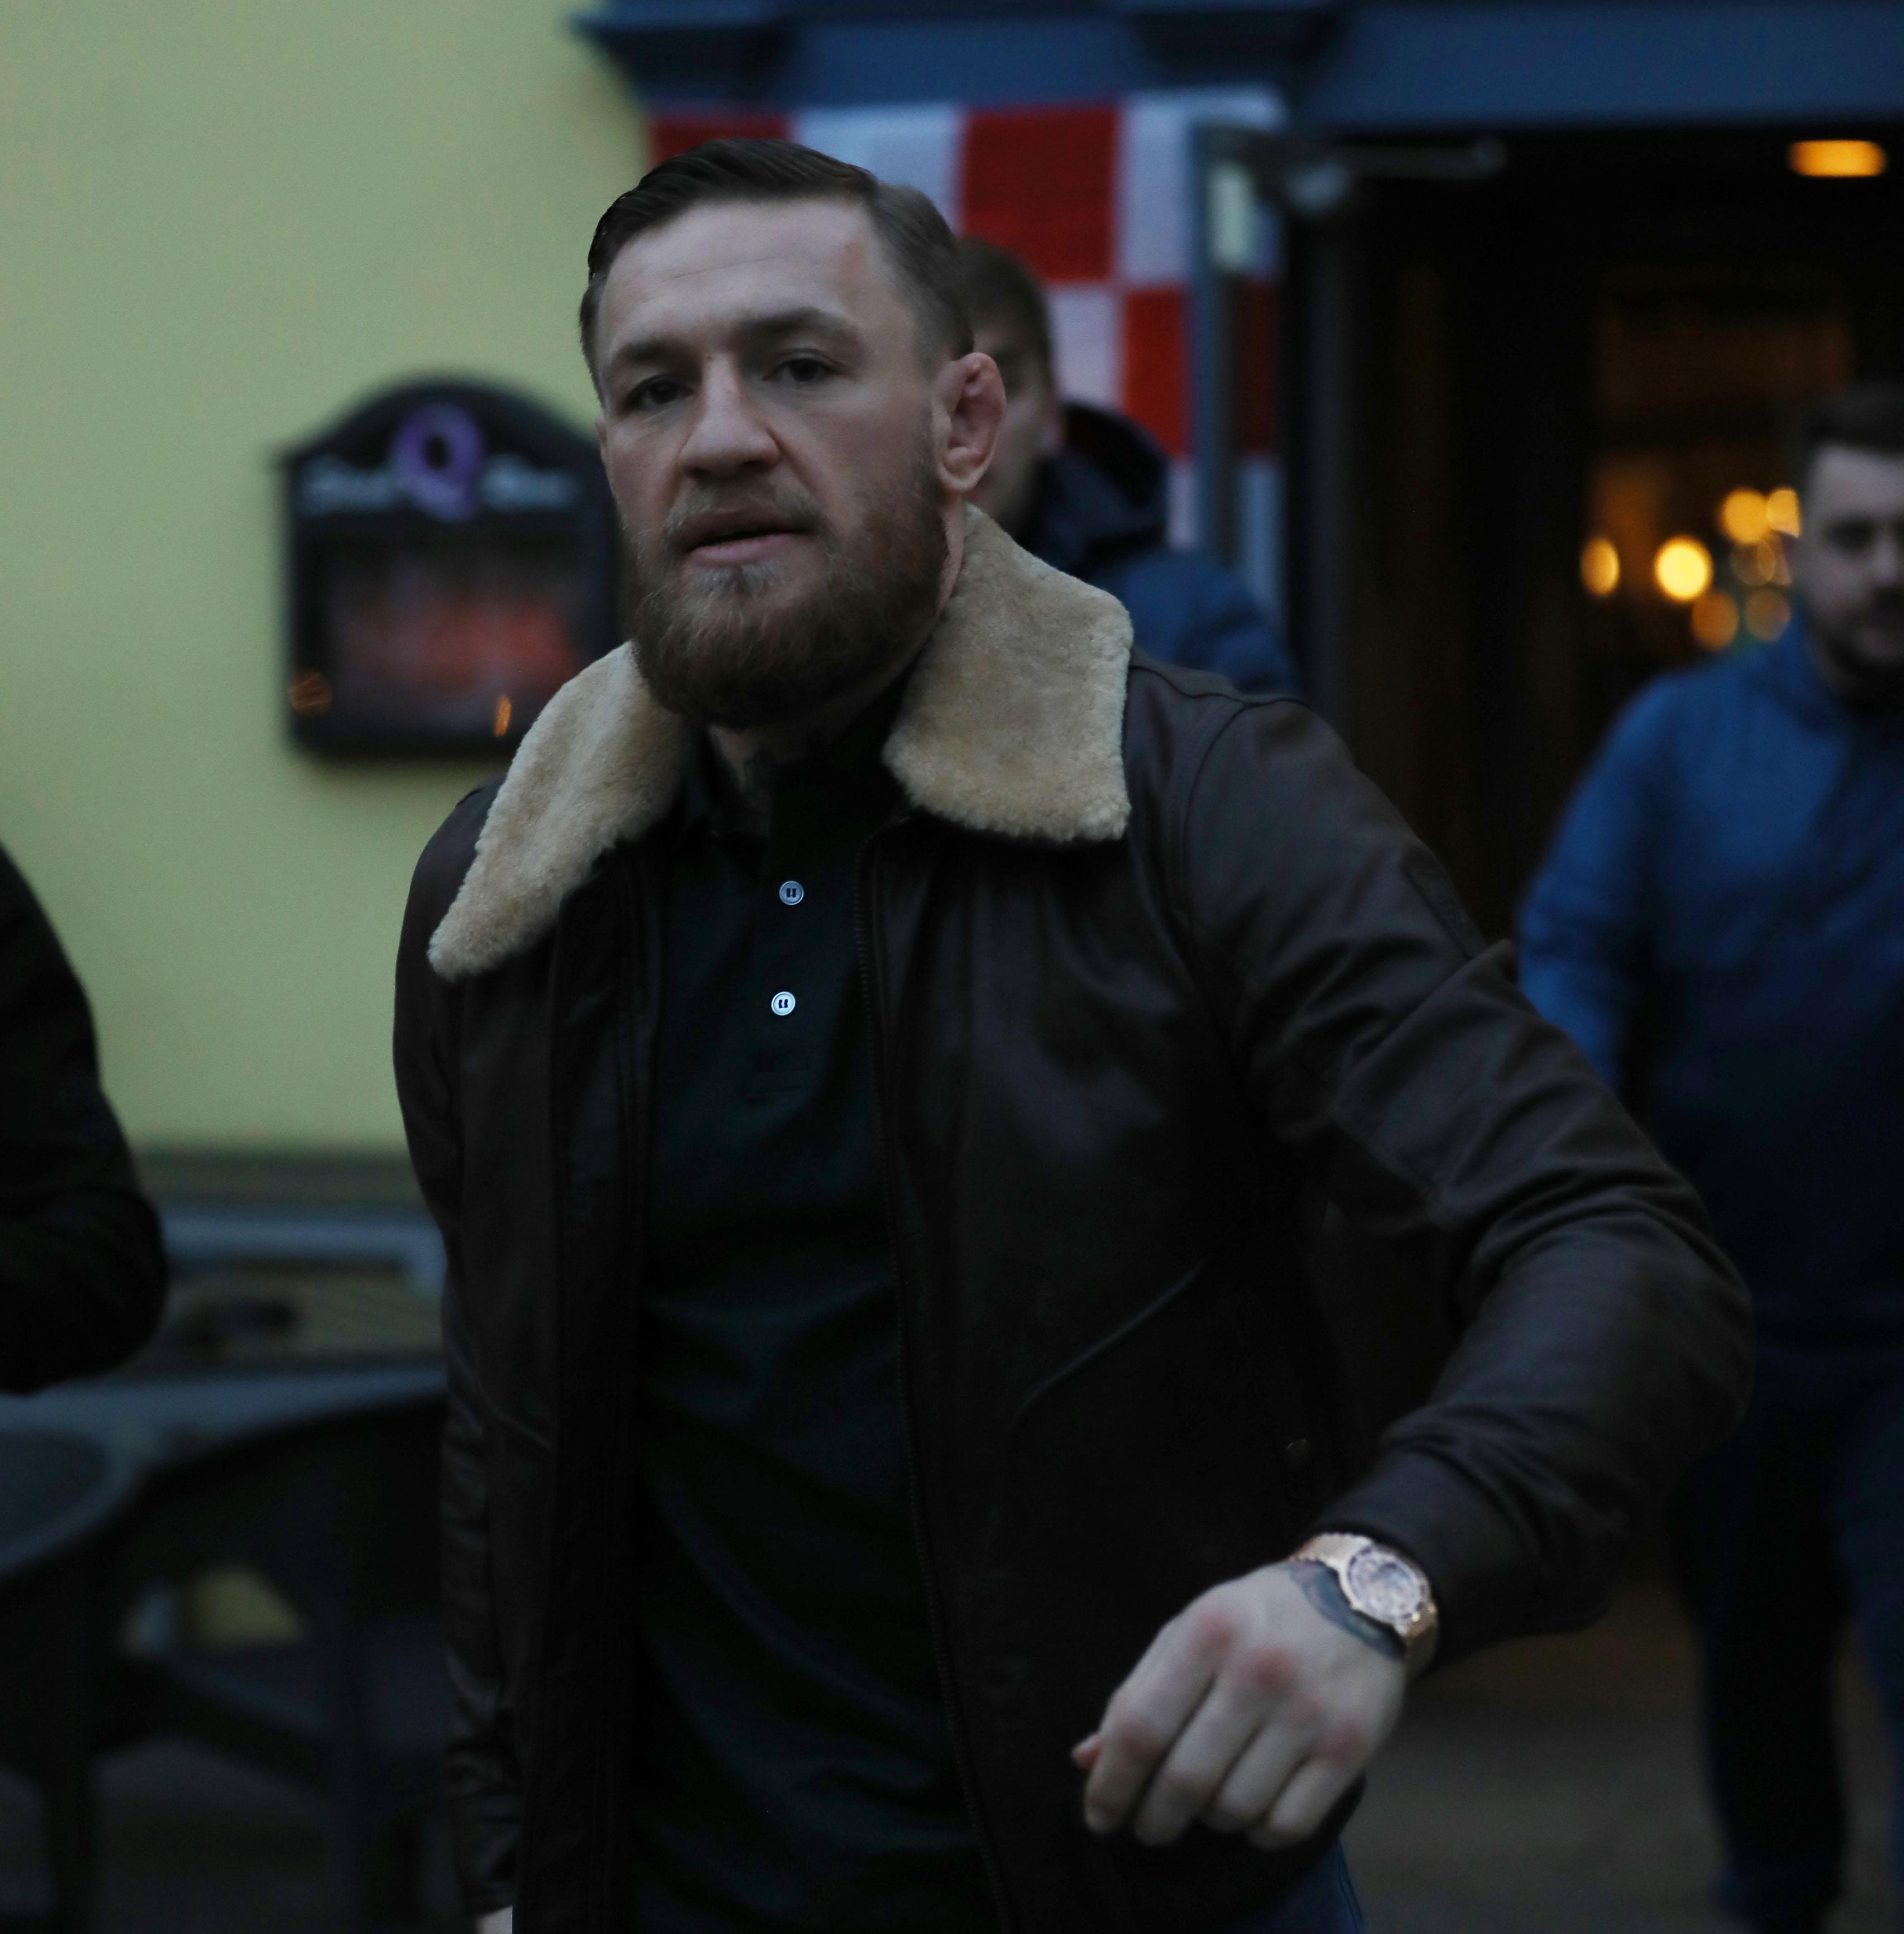 Conor McGregor has been enjoying some down-time in Dublin